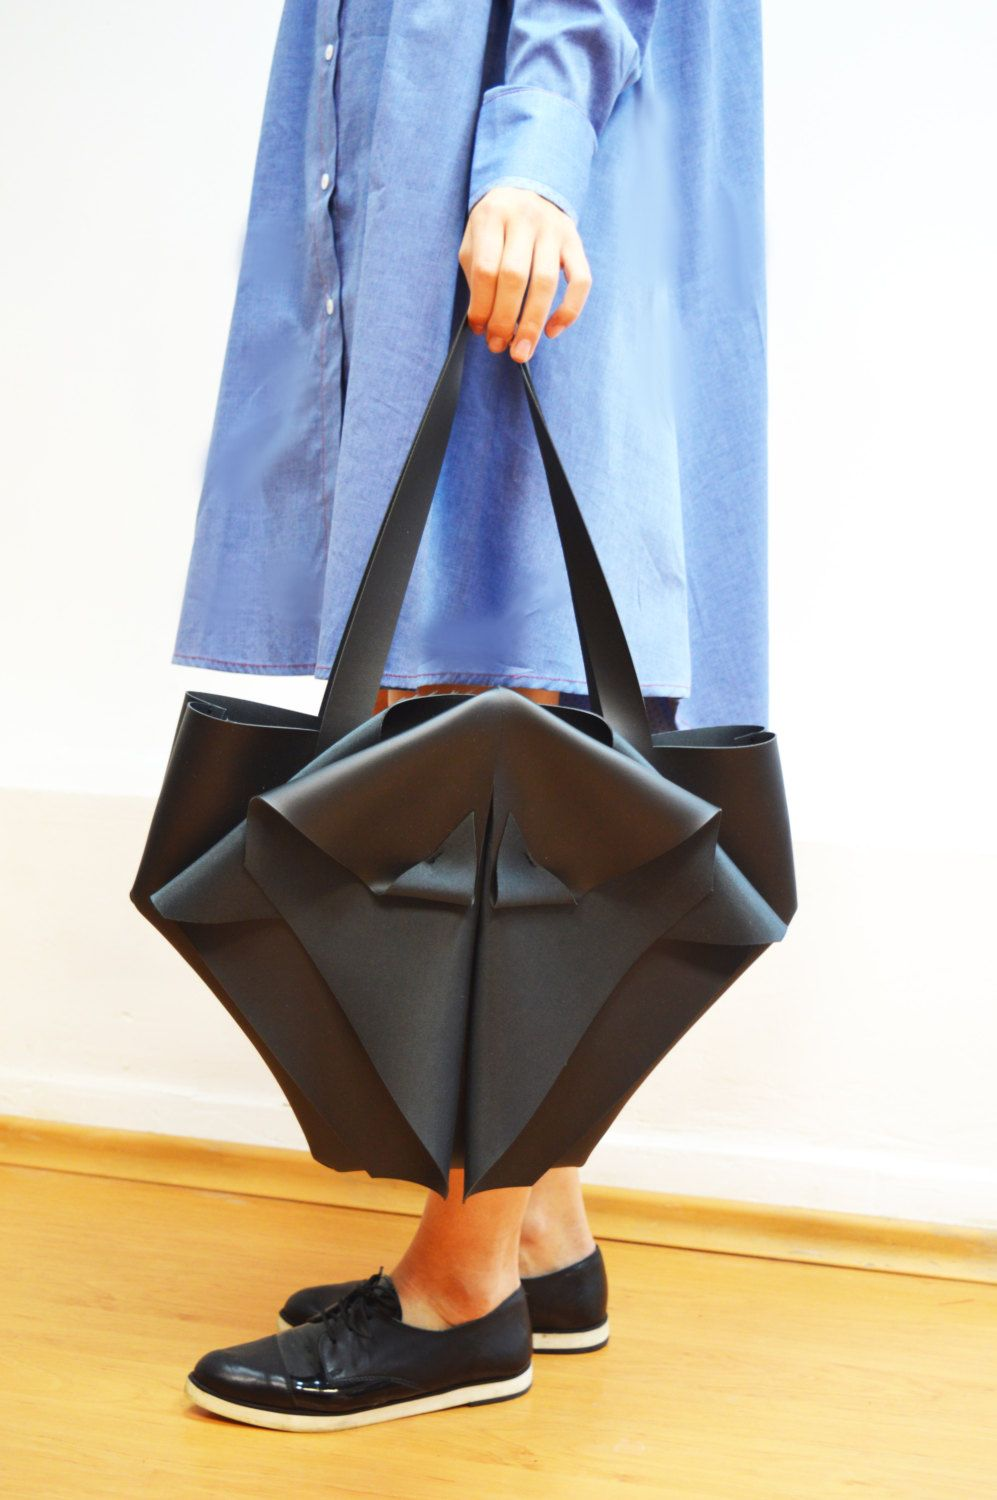 Photo of Medium Origami Bag,Bohemian Faux Leather Bag,Vegan Leather Bag,Handmade,Black Leather Totte,Minimalist Geometric Tote,ATTITUDE157,AT00783